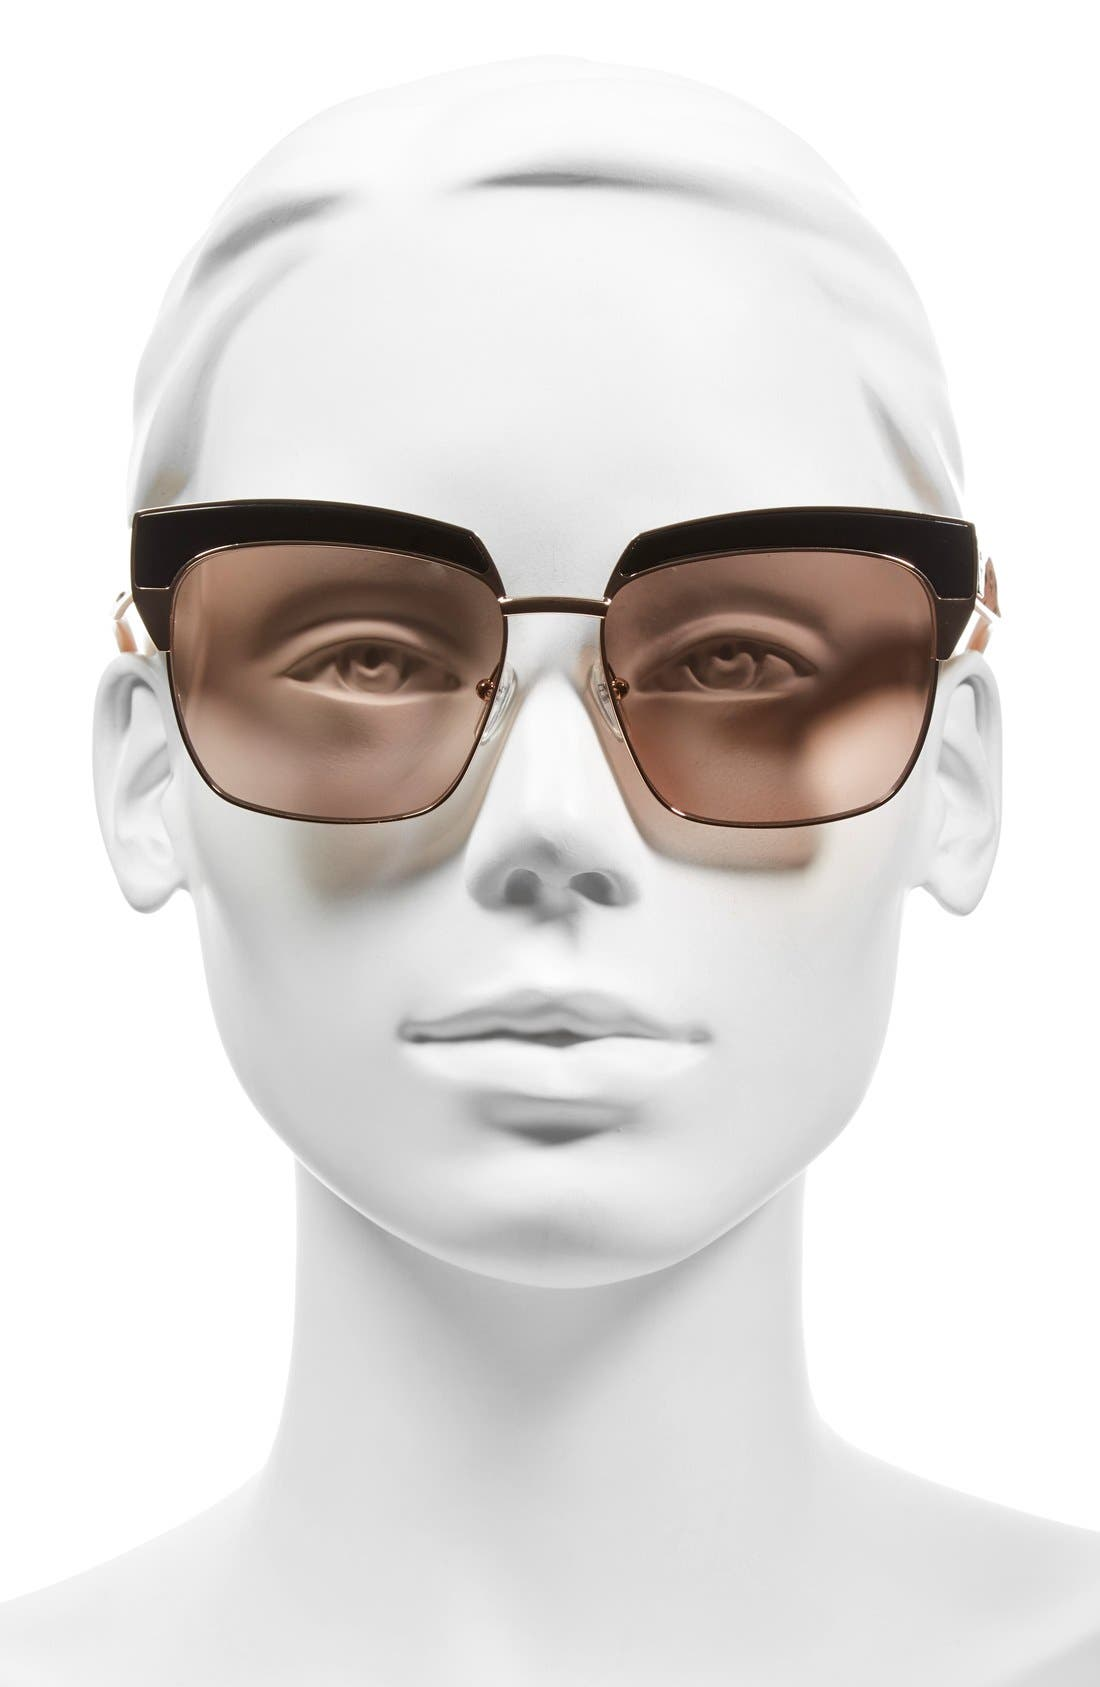 'Visetos' 56mm Retro Sunglasses,                             Alternate thumbnail 2, color,                             Shiny Rose Gold/ Nude Visetos